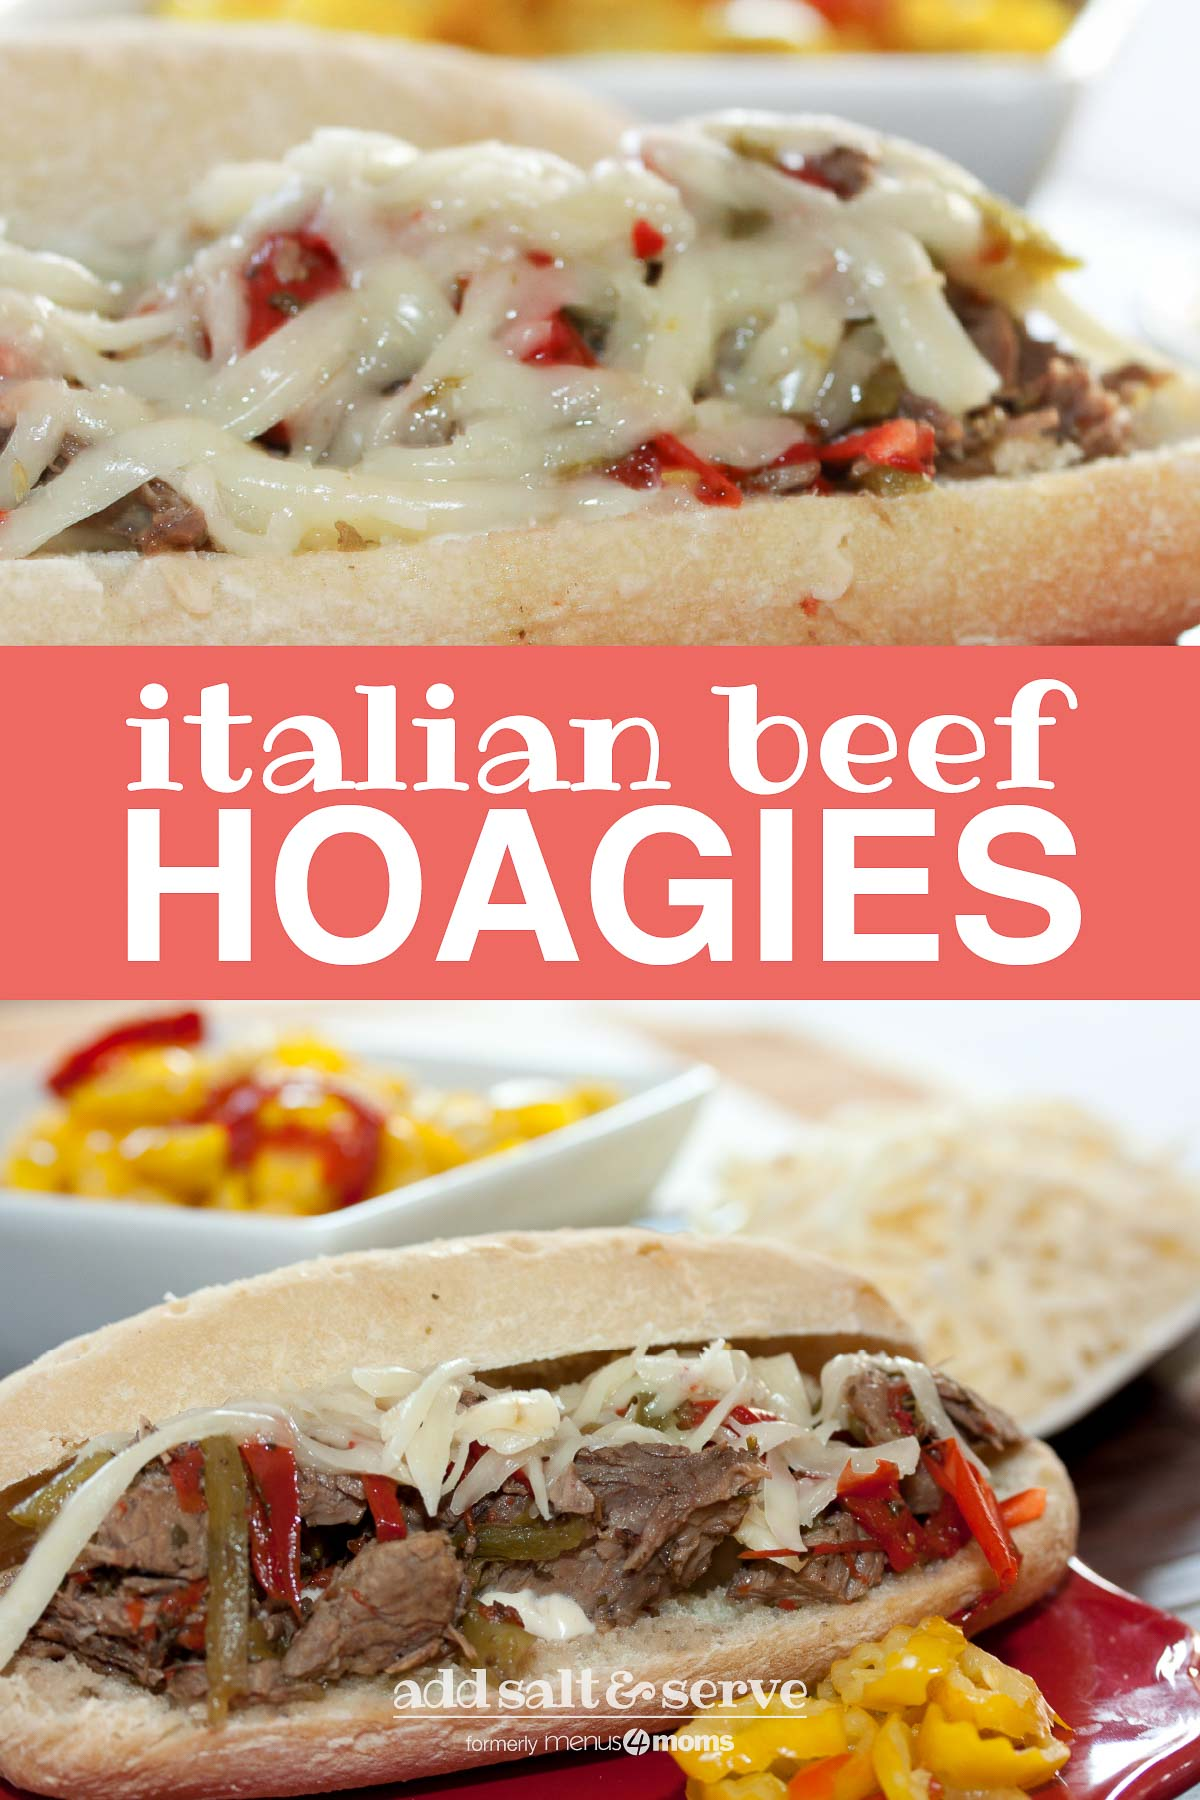 Top photo is shredded roast beef, onions, and bell peppers coverd with melted mozarella cheese on a hoagie roll. Bottom photo is a hoagie roll on a red plate with shredded roast beef, onions, and bell peppers, with a white bowl of pickled peppers in the background; text Italian Beef Hoagies Add Salt & Serve formerly Menus4Moms